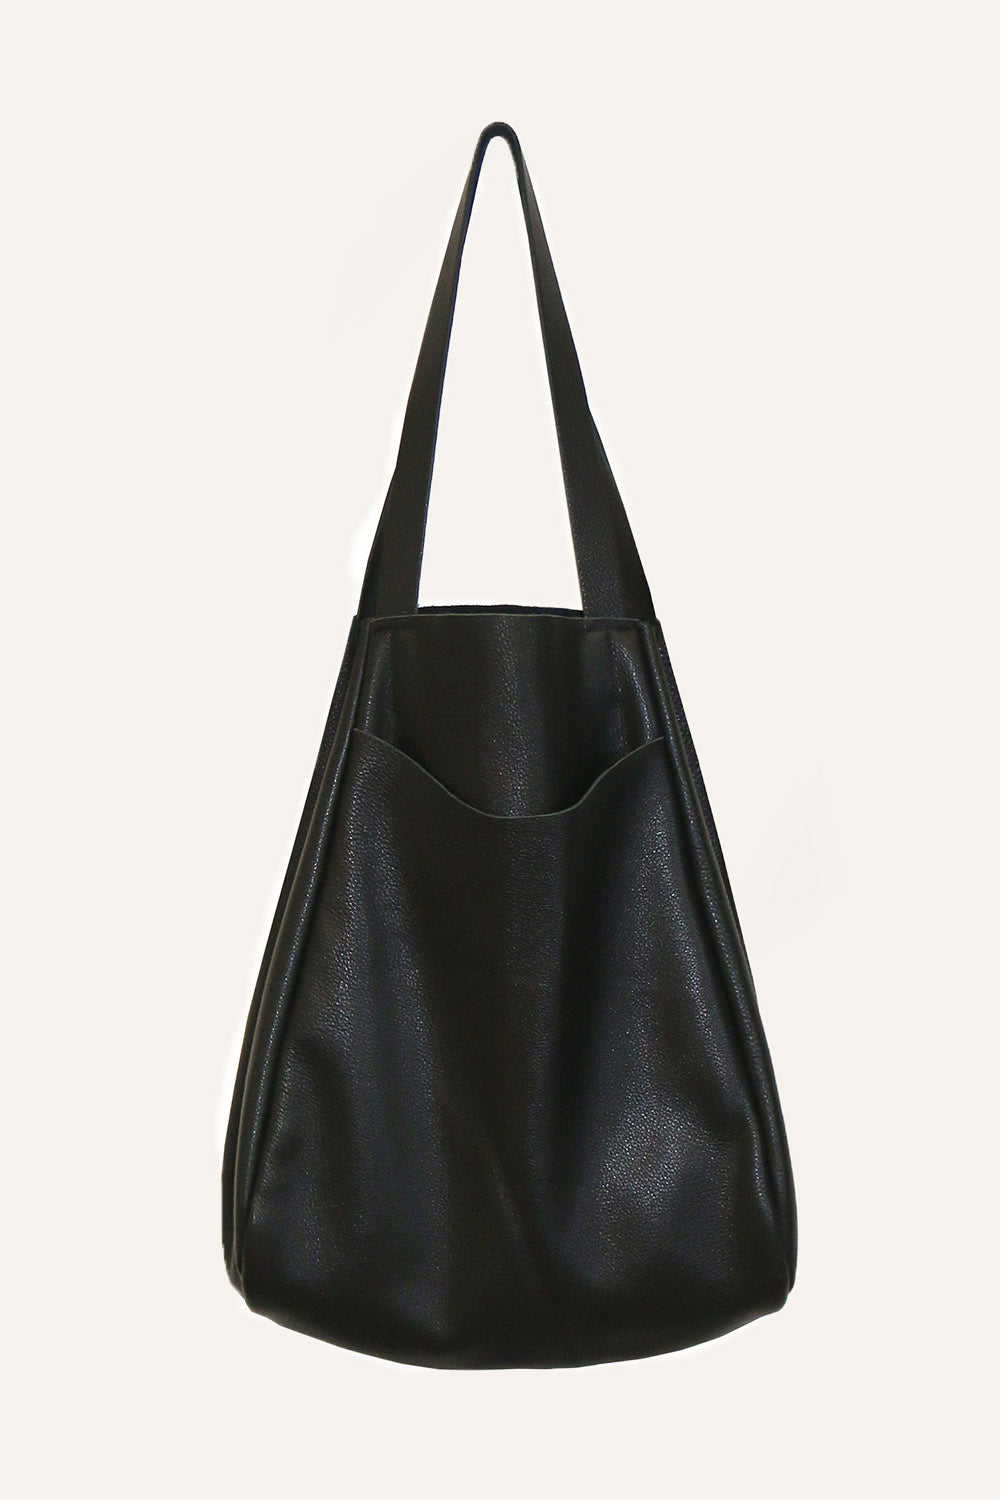 Archy Tote